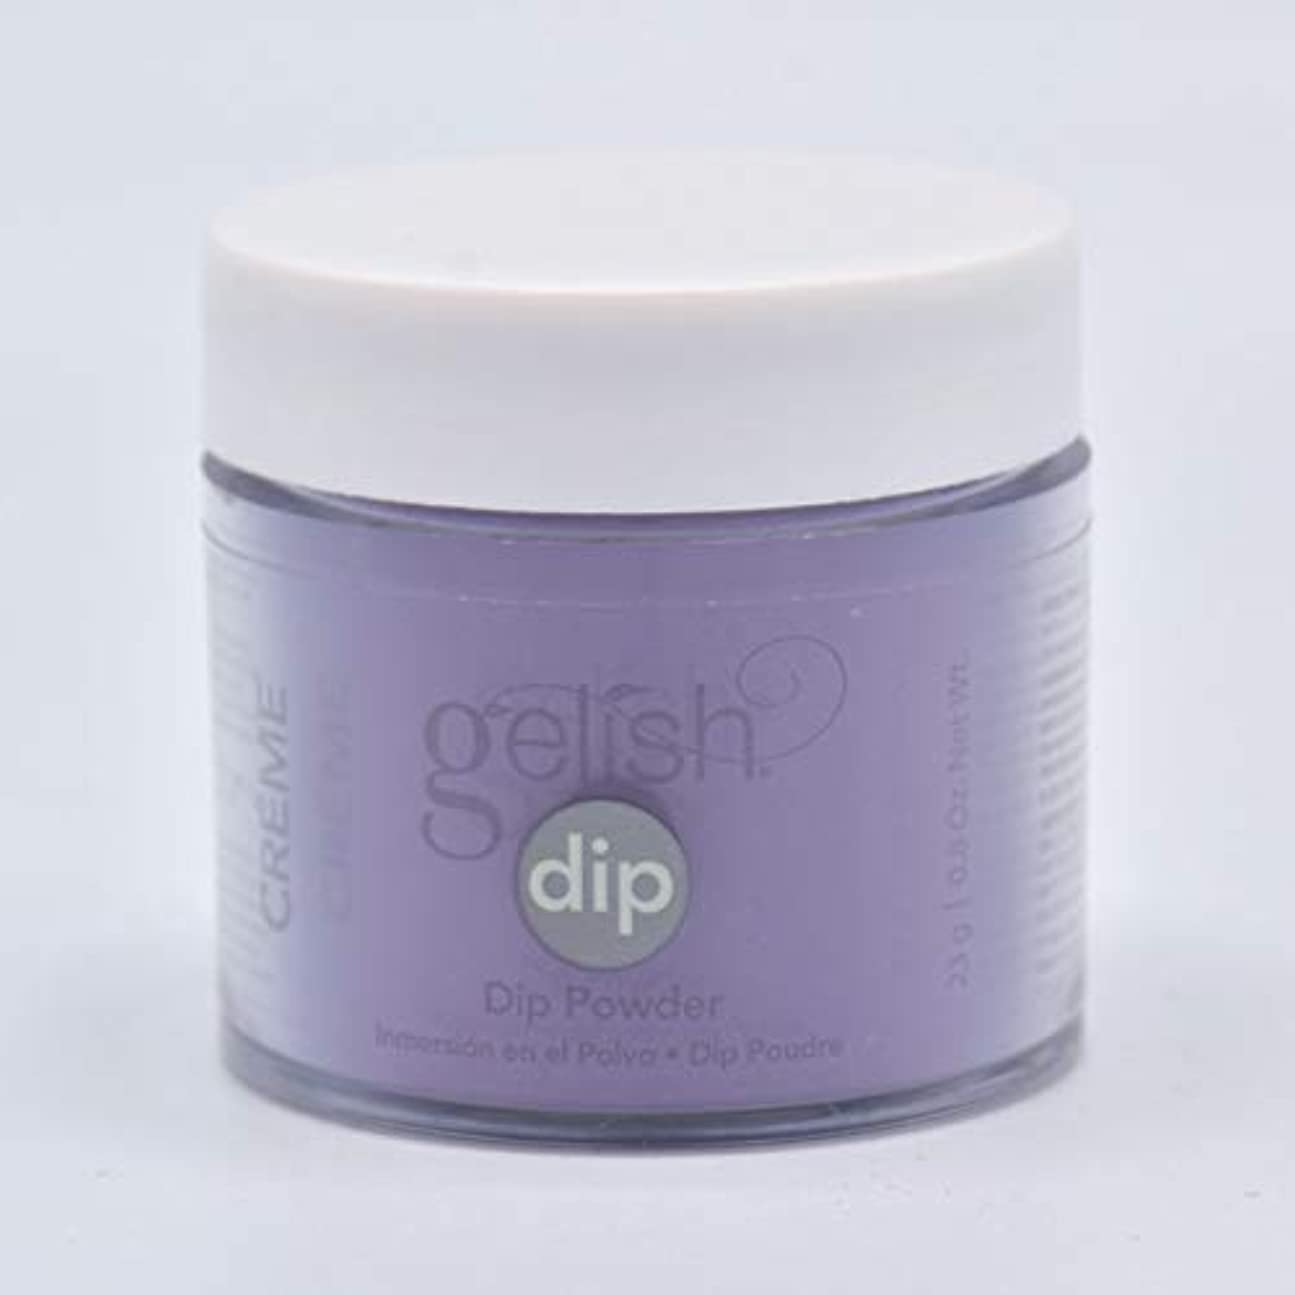 葉巻分配しますかろうじてHarmony Gelish - Acrylic Dip Powder - Black Cherry Berry - 23g / 0.8oz